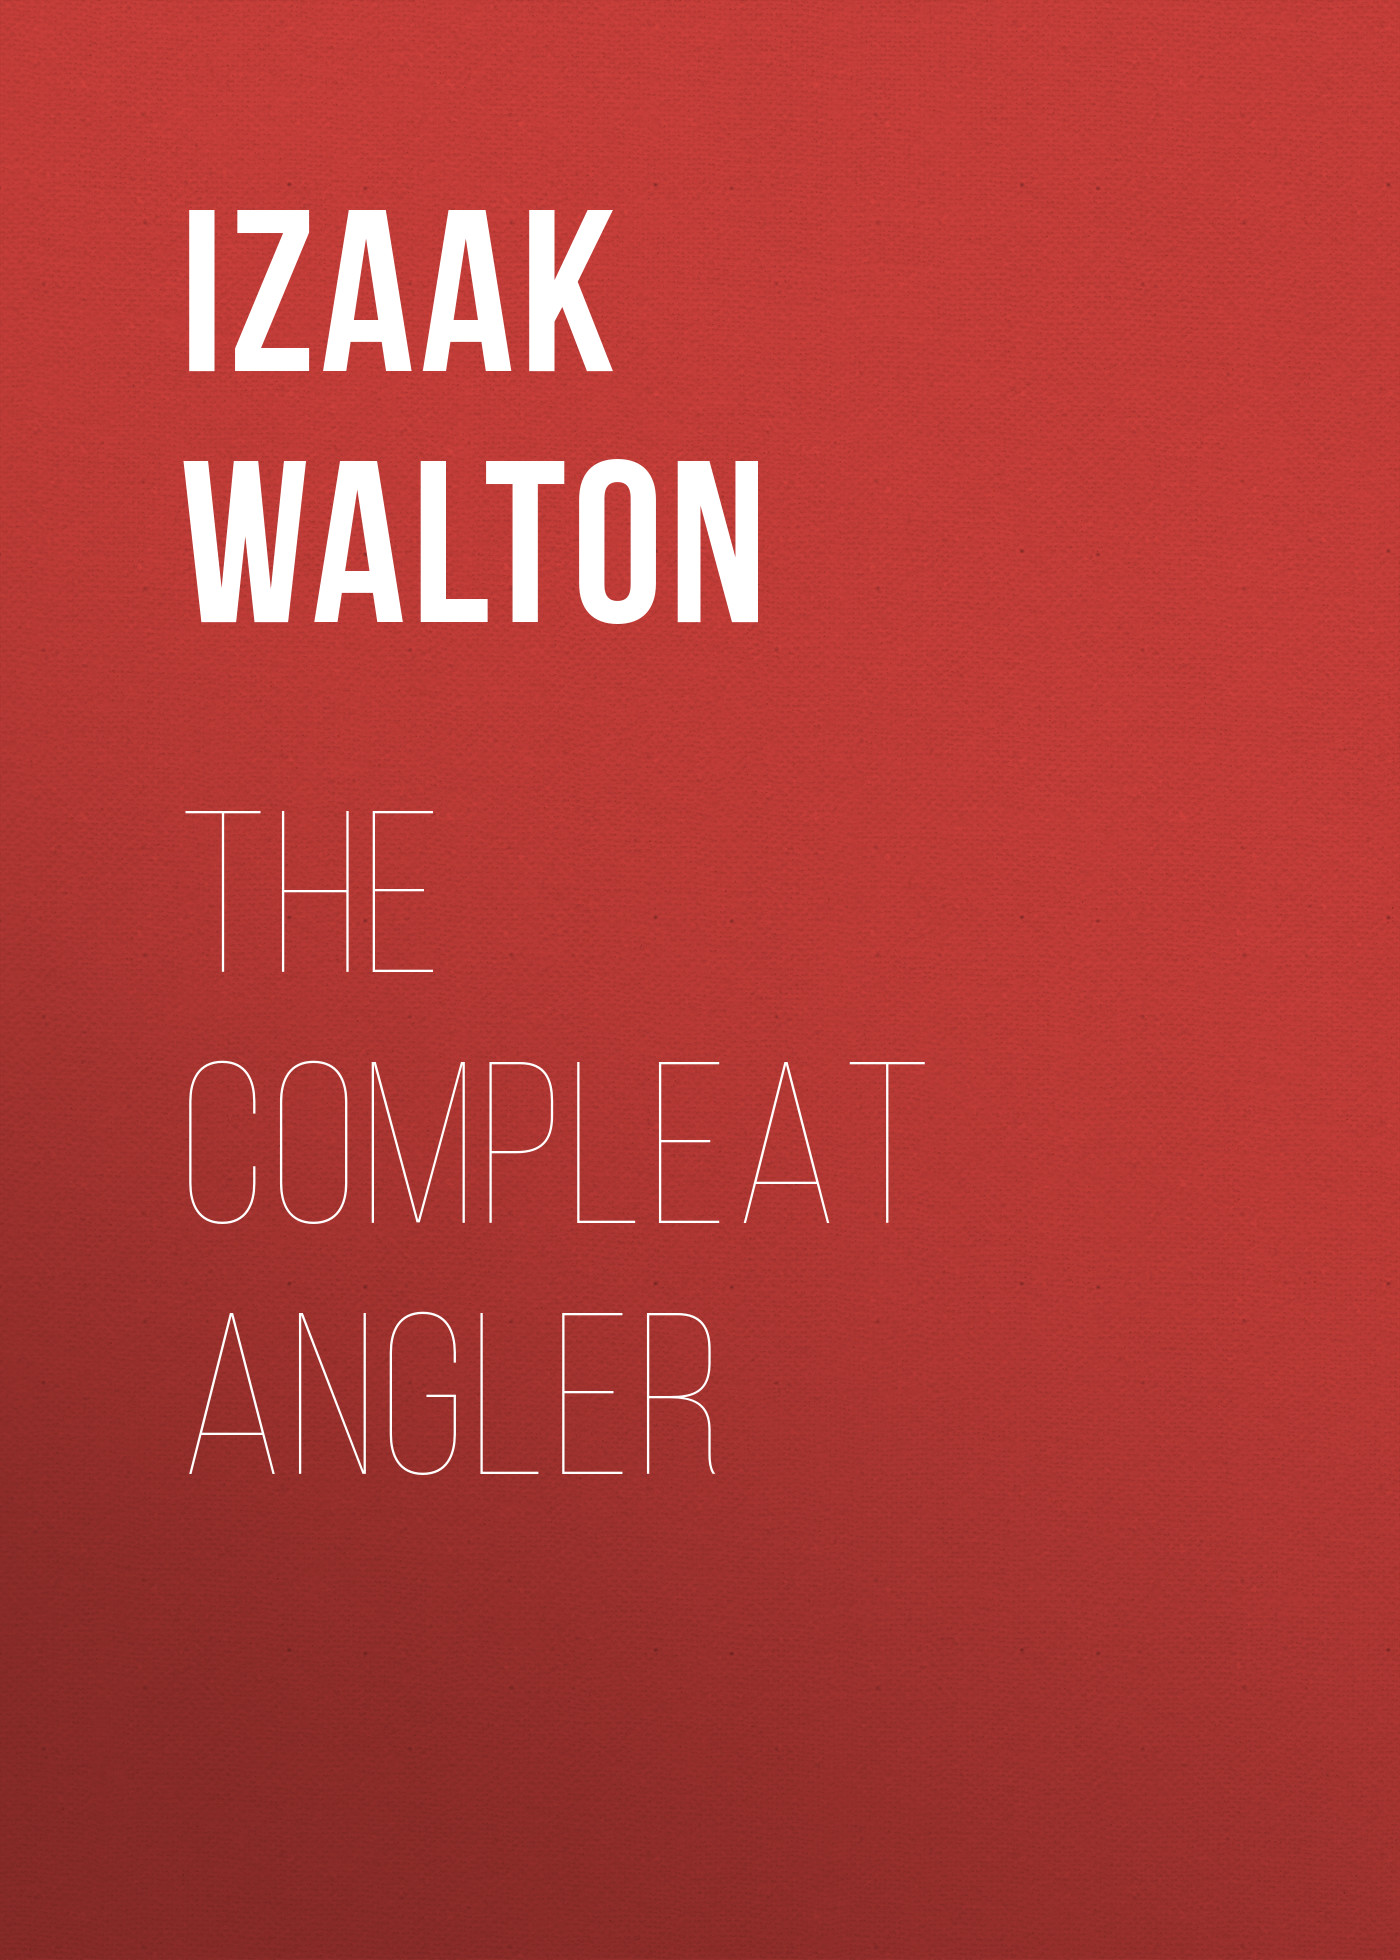 Izaak Walton The Compleat Angler walton izaak the compleat angler or the contemplative man s recreation being a